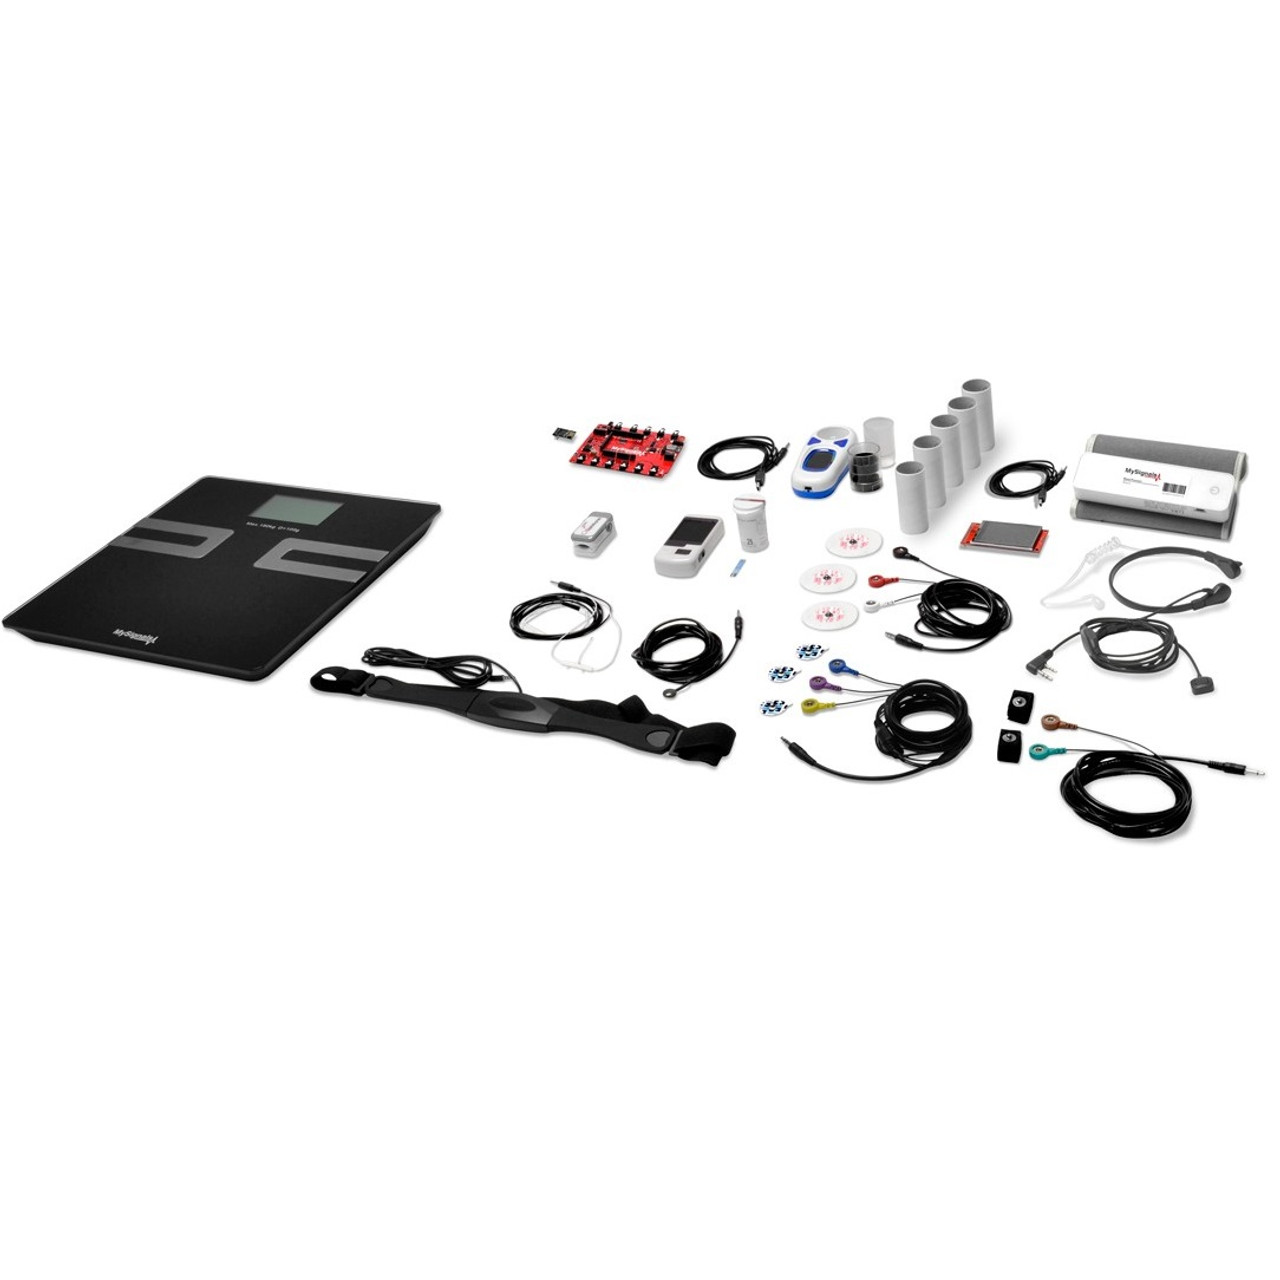 MySignals HW BLE Complete Kit (eHealth Medical Development Platform for  Arduino) - American Version